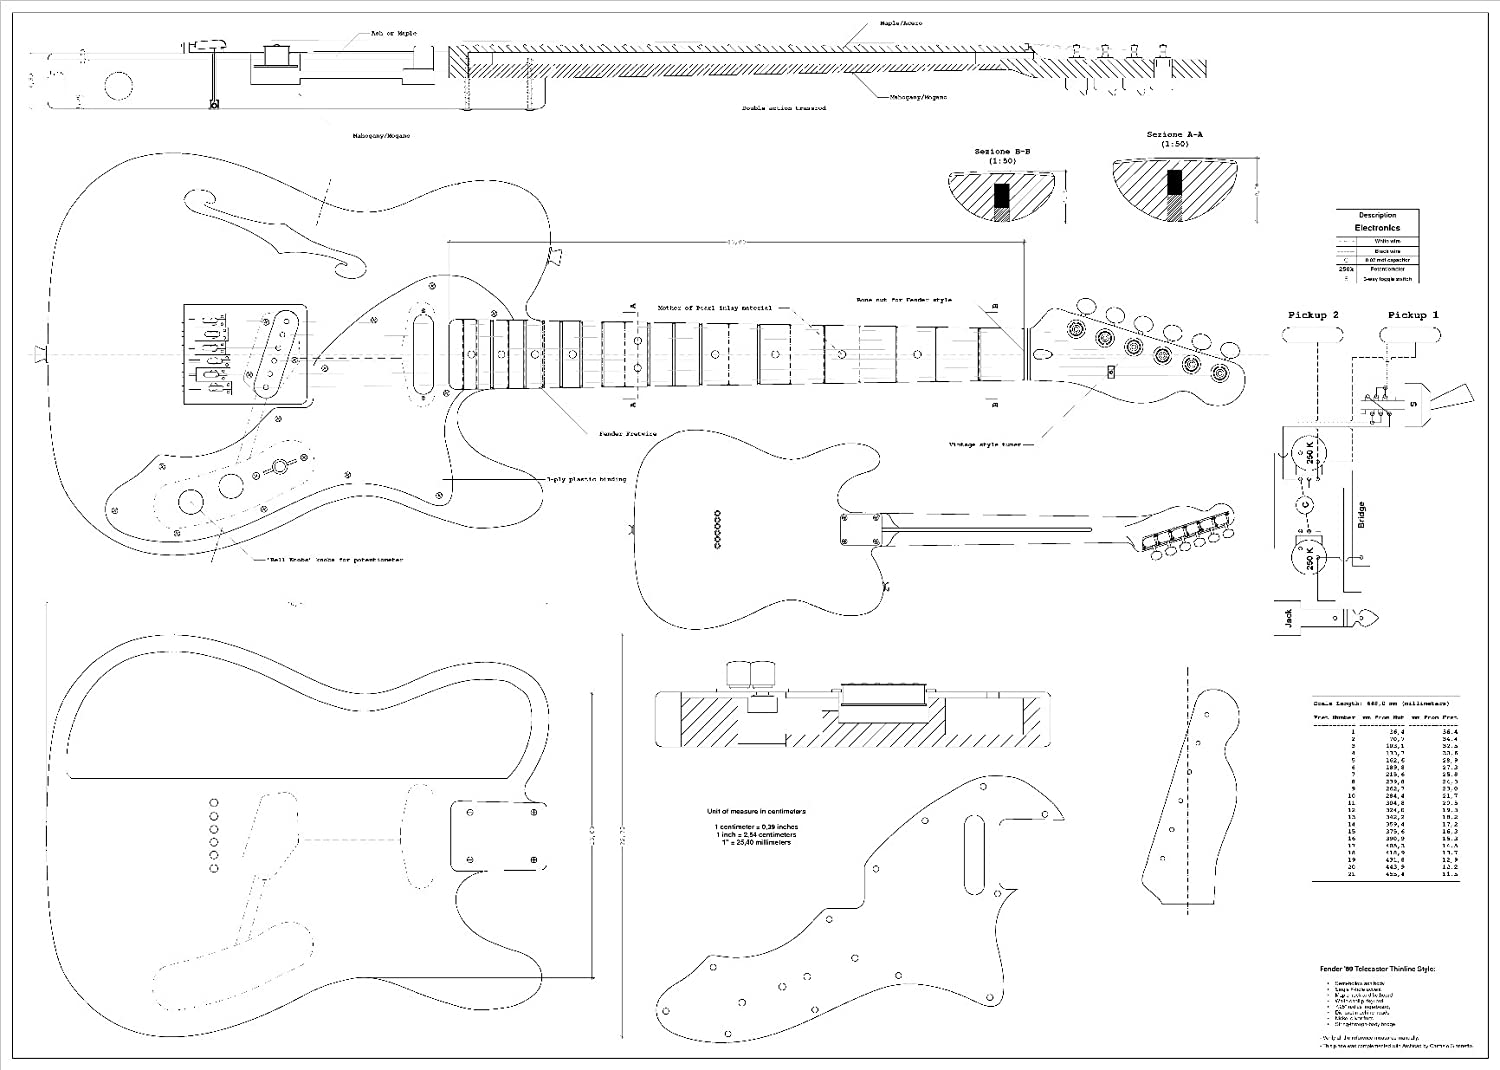 Amazon.com: Full Scale Plans for the Fender Telecaster 1969 Thinline ...